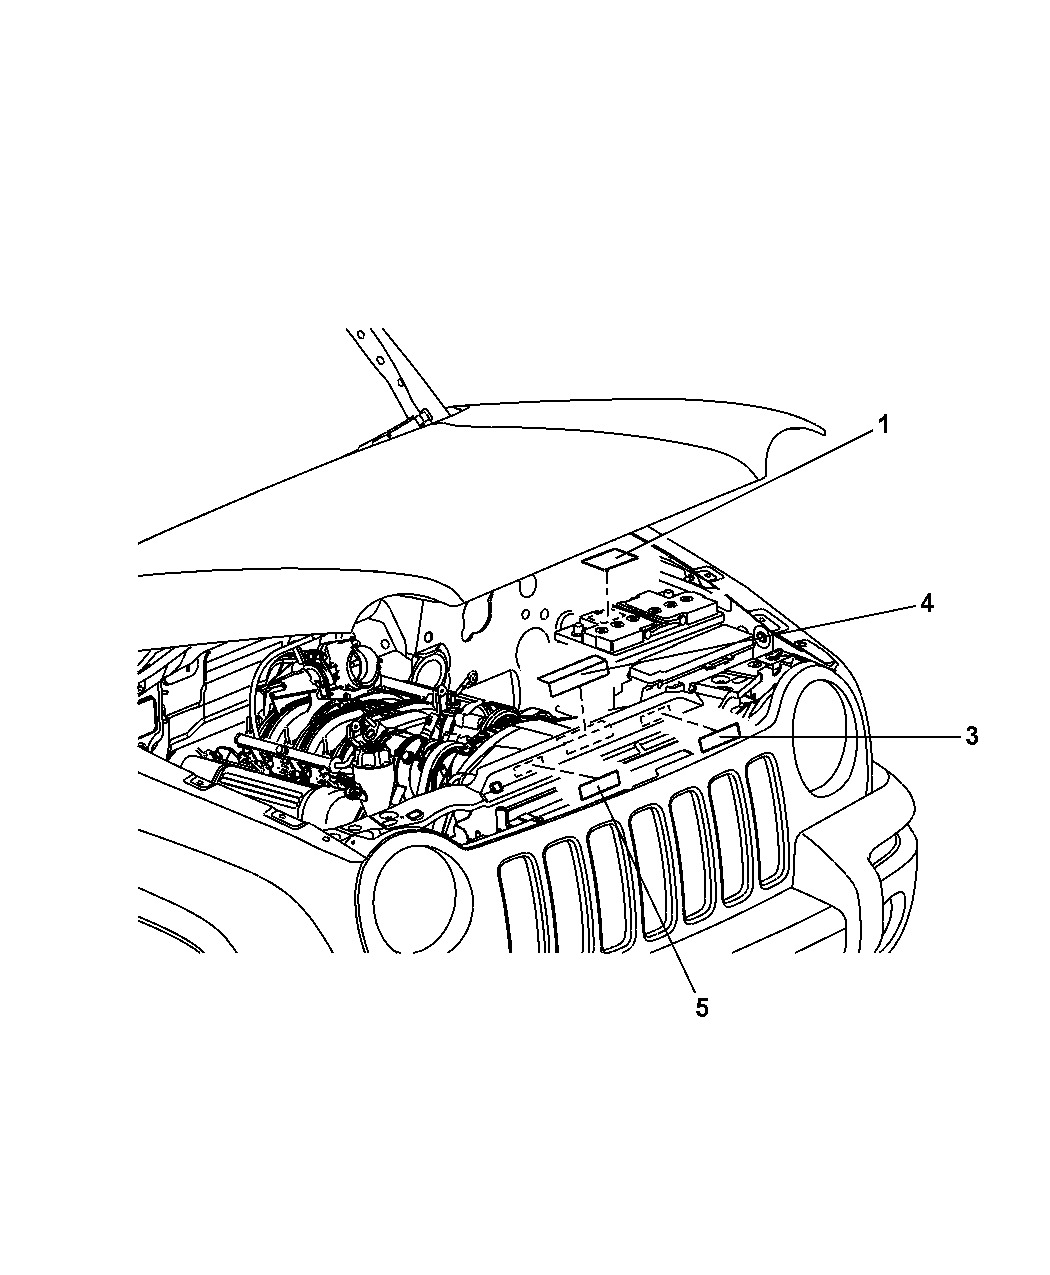 2004 Jeep Liberty Engine Compartment